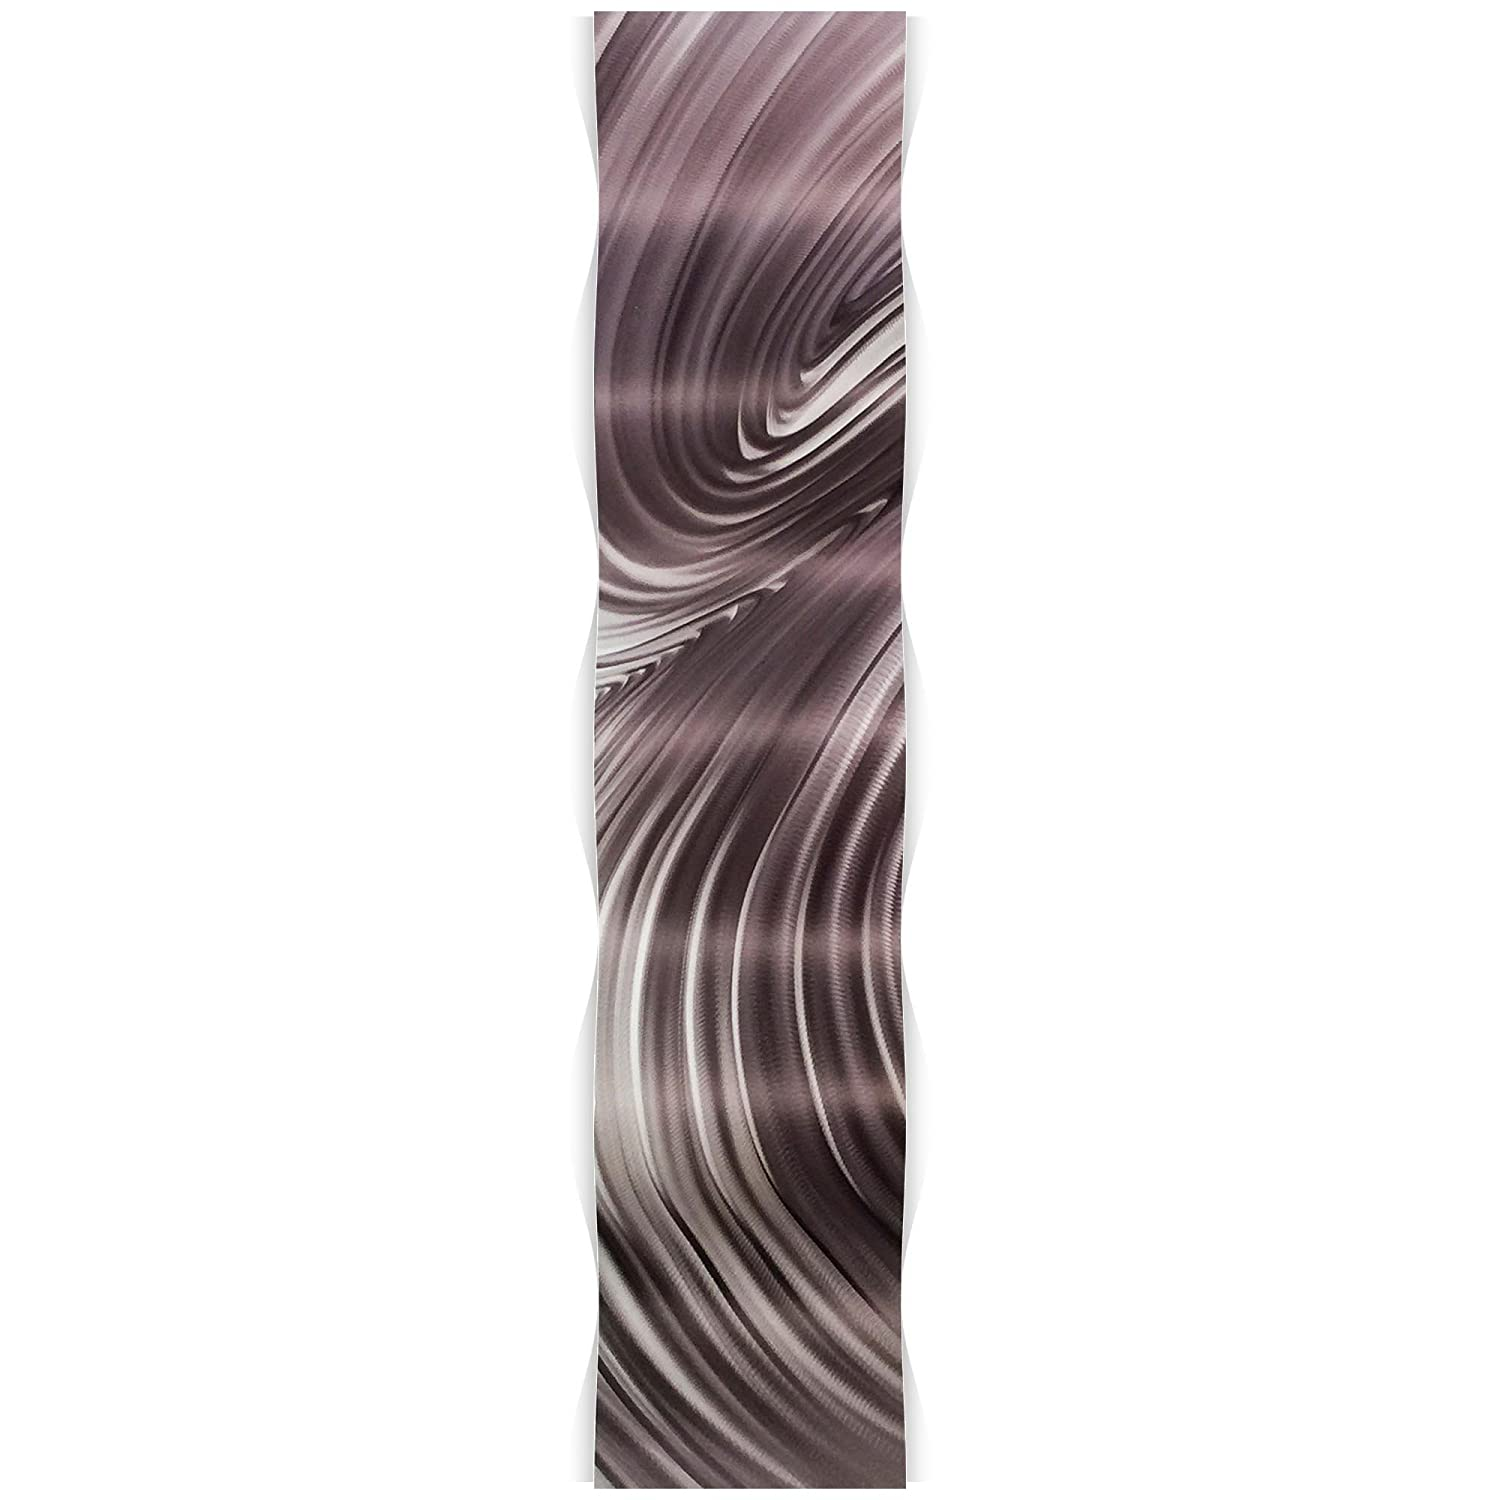 Wavy Metal Art Modern Wall Sculpture Eclectic Home Accent Curved Abstract Decor